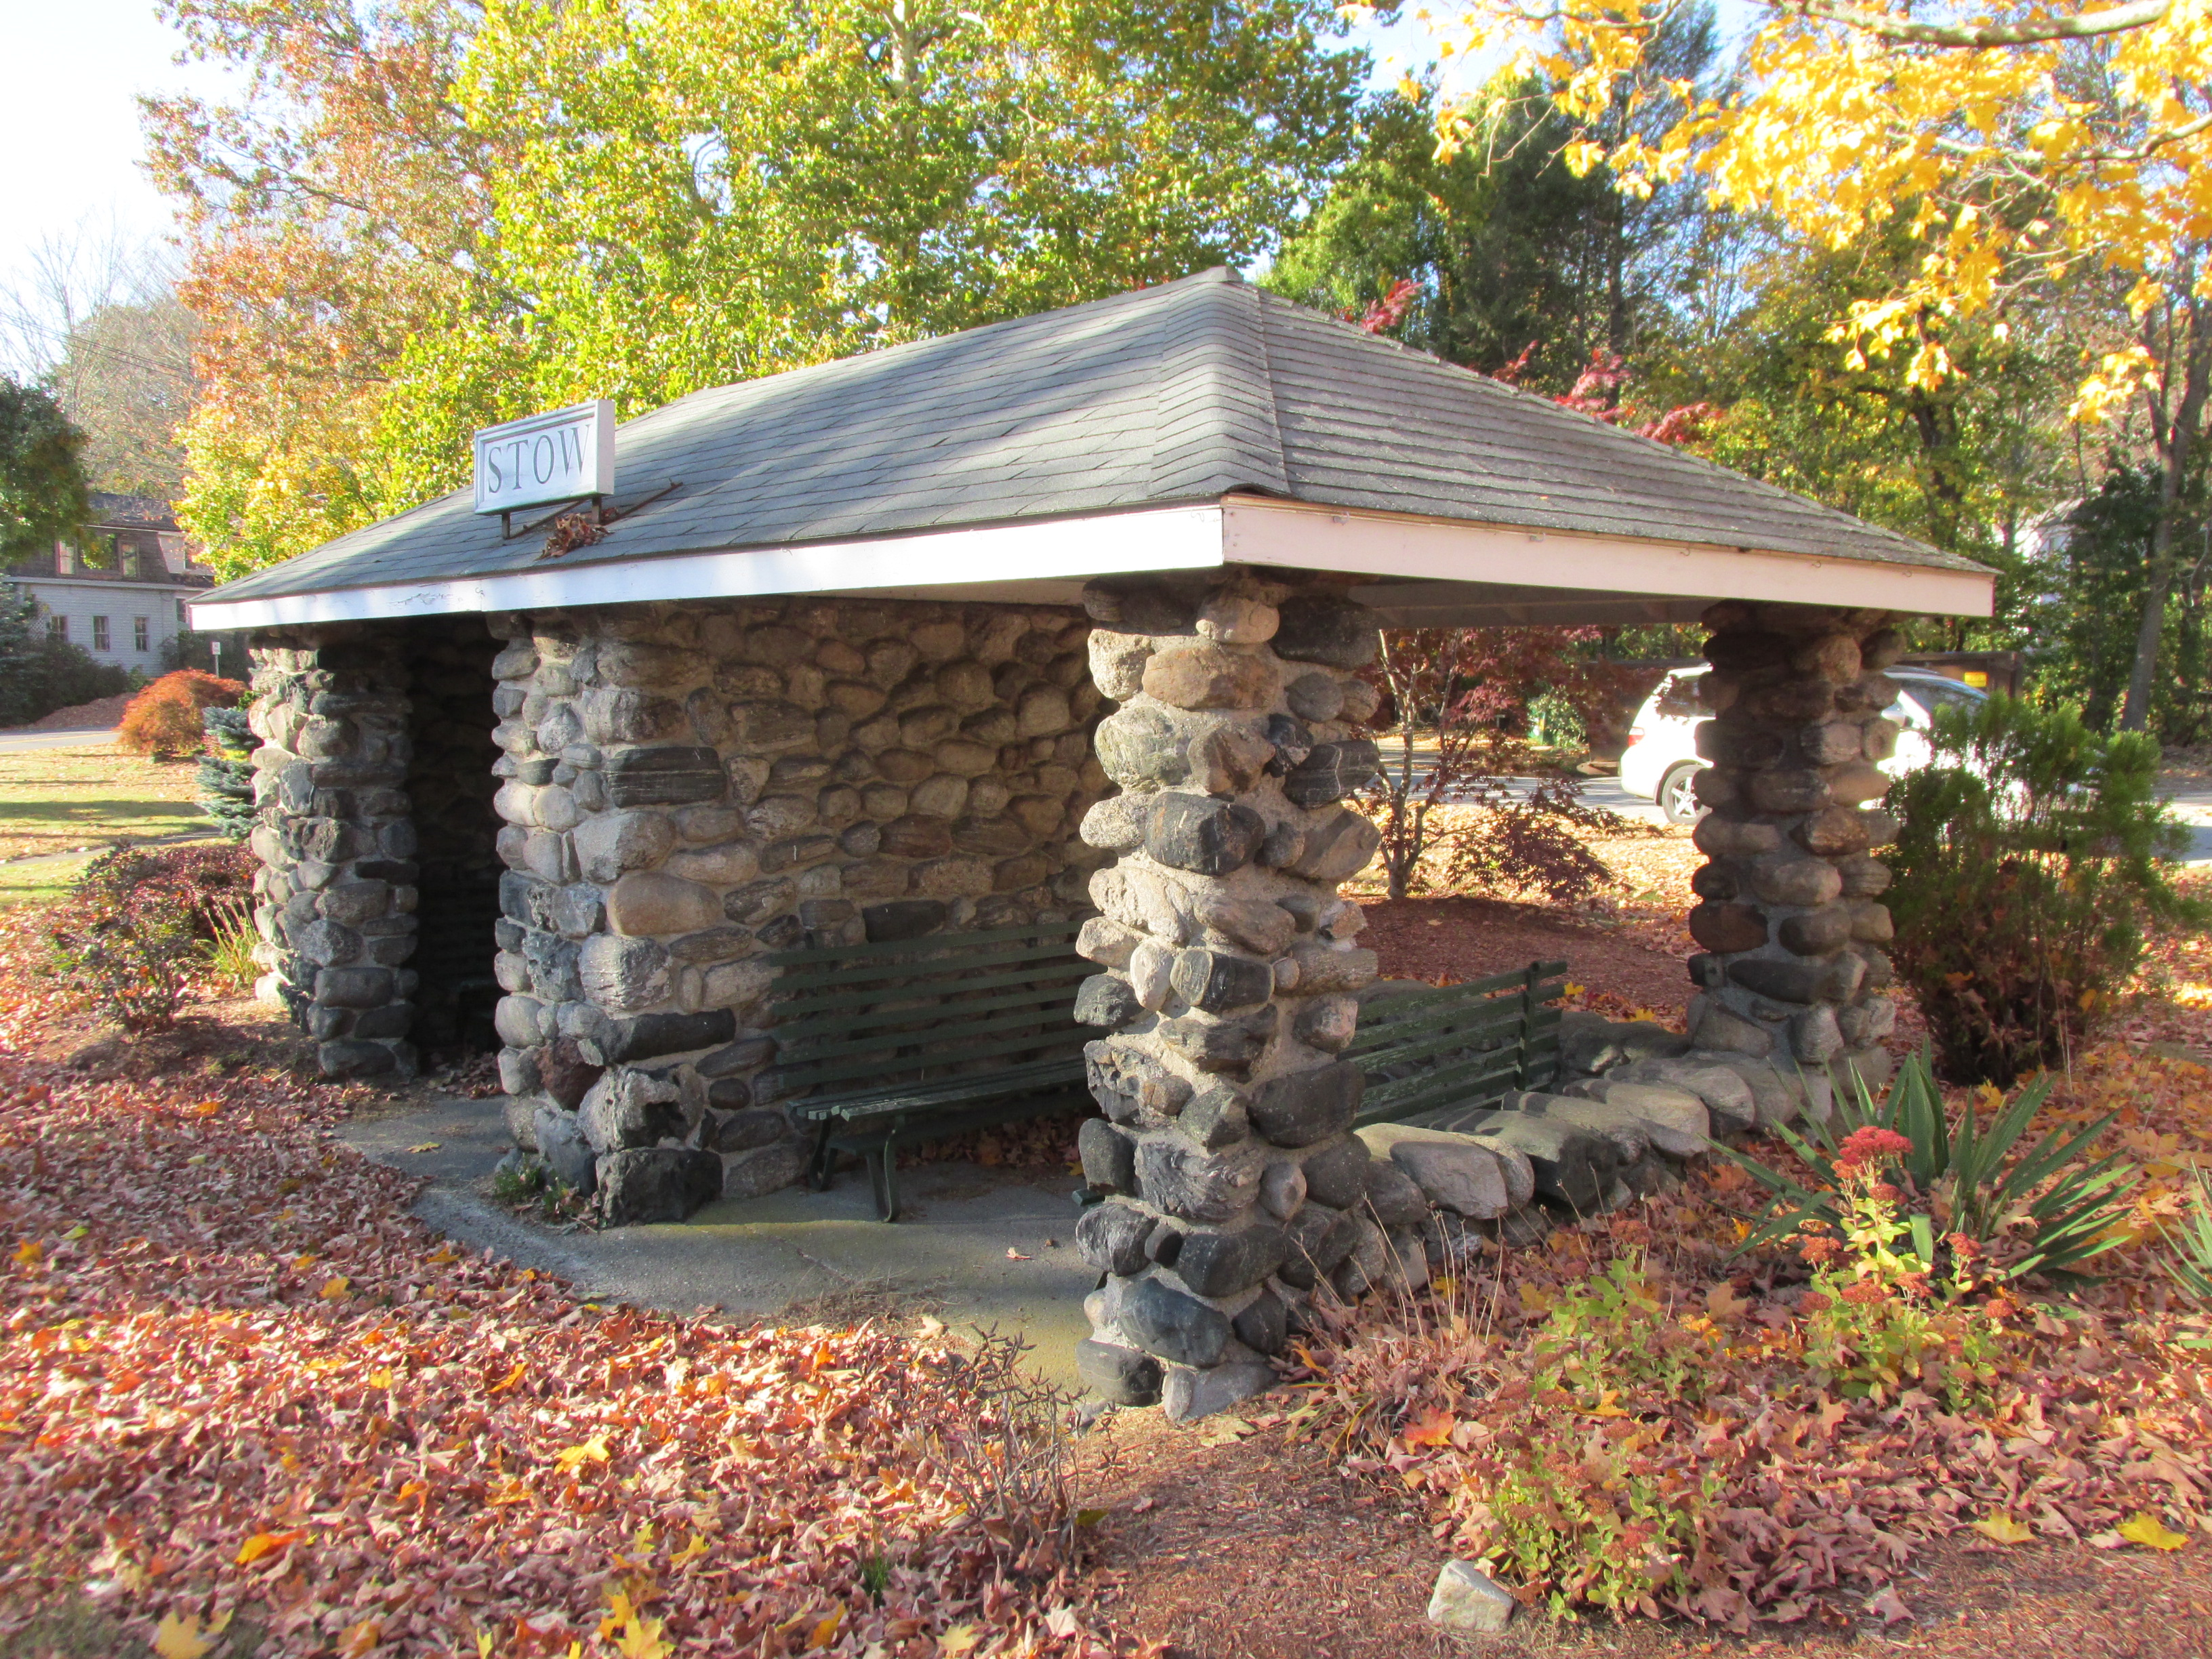 File Stone Shelter On Great Road Stow Ma Jpg Wikimedia